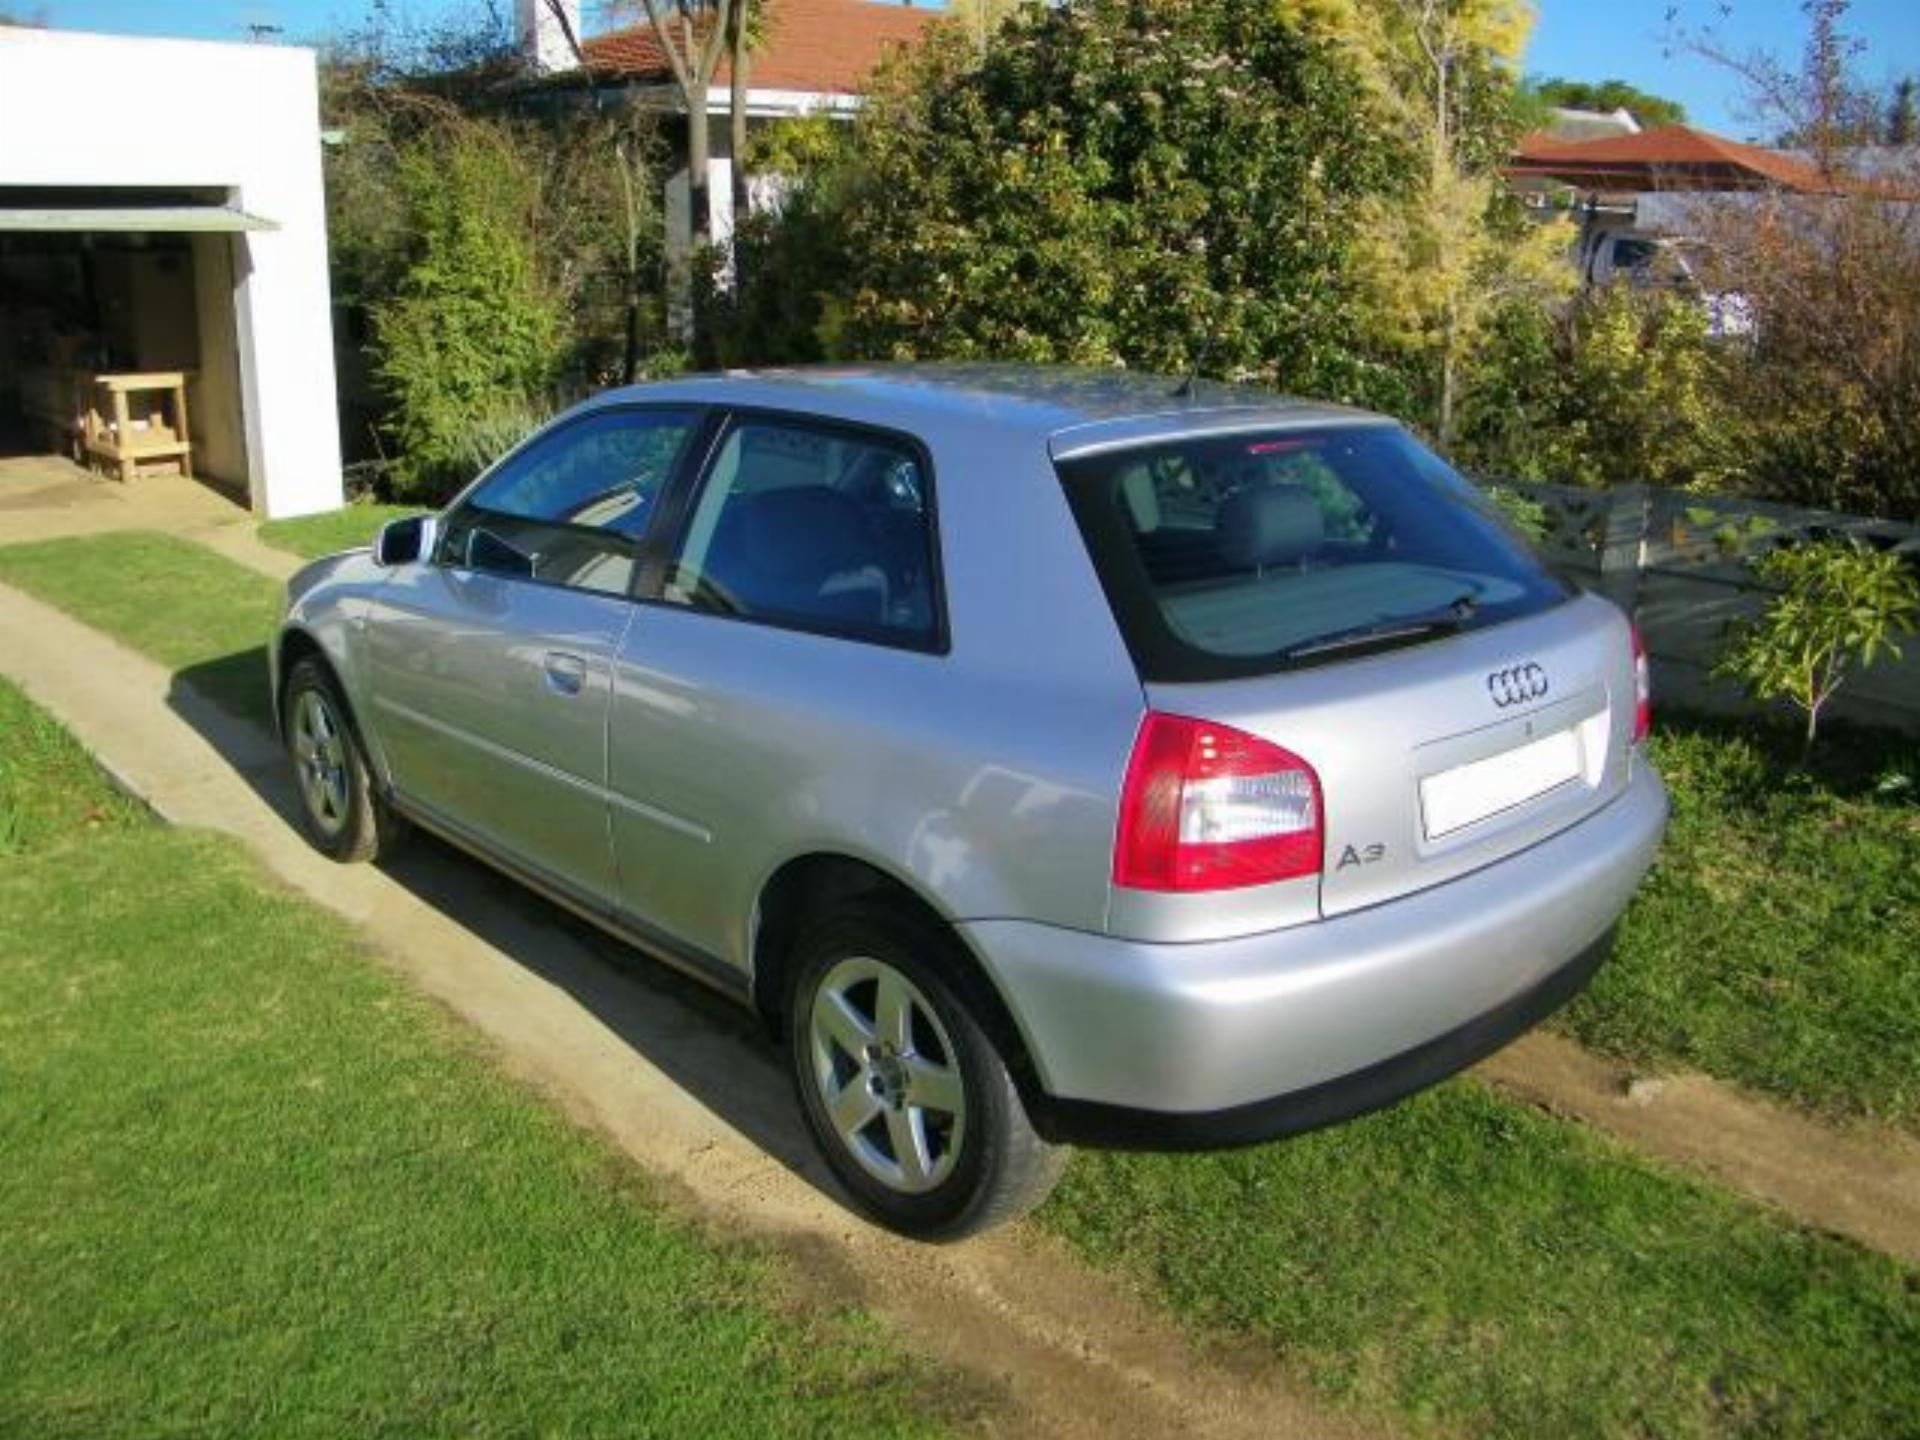 Used Audi A3 1.8 3DOOR 2001 on auction - PV1000467